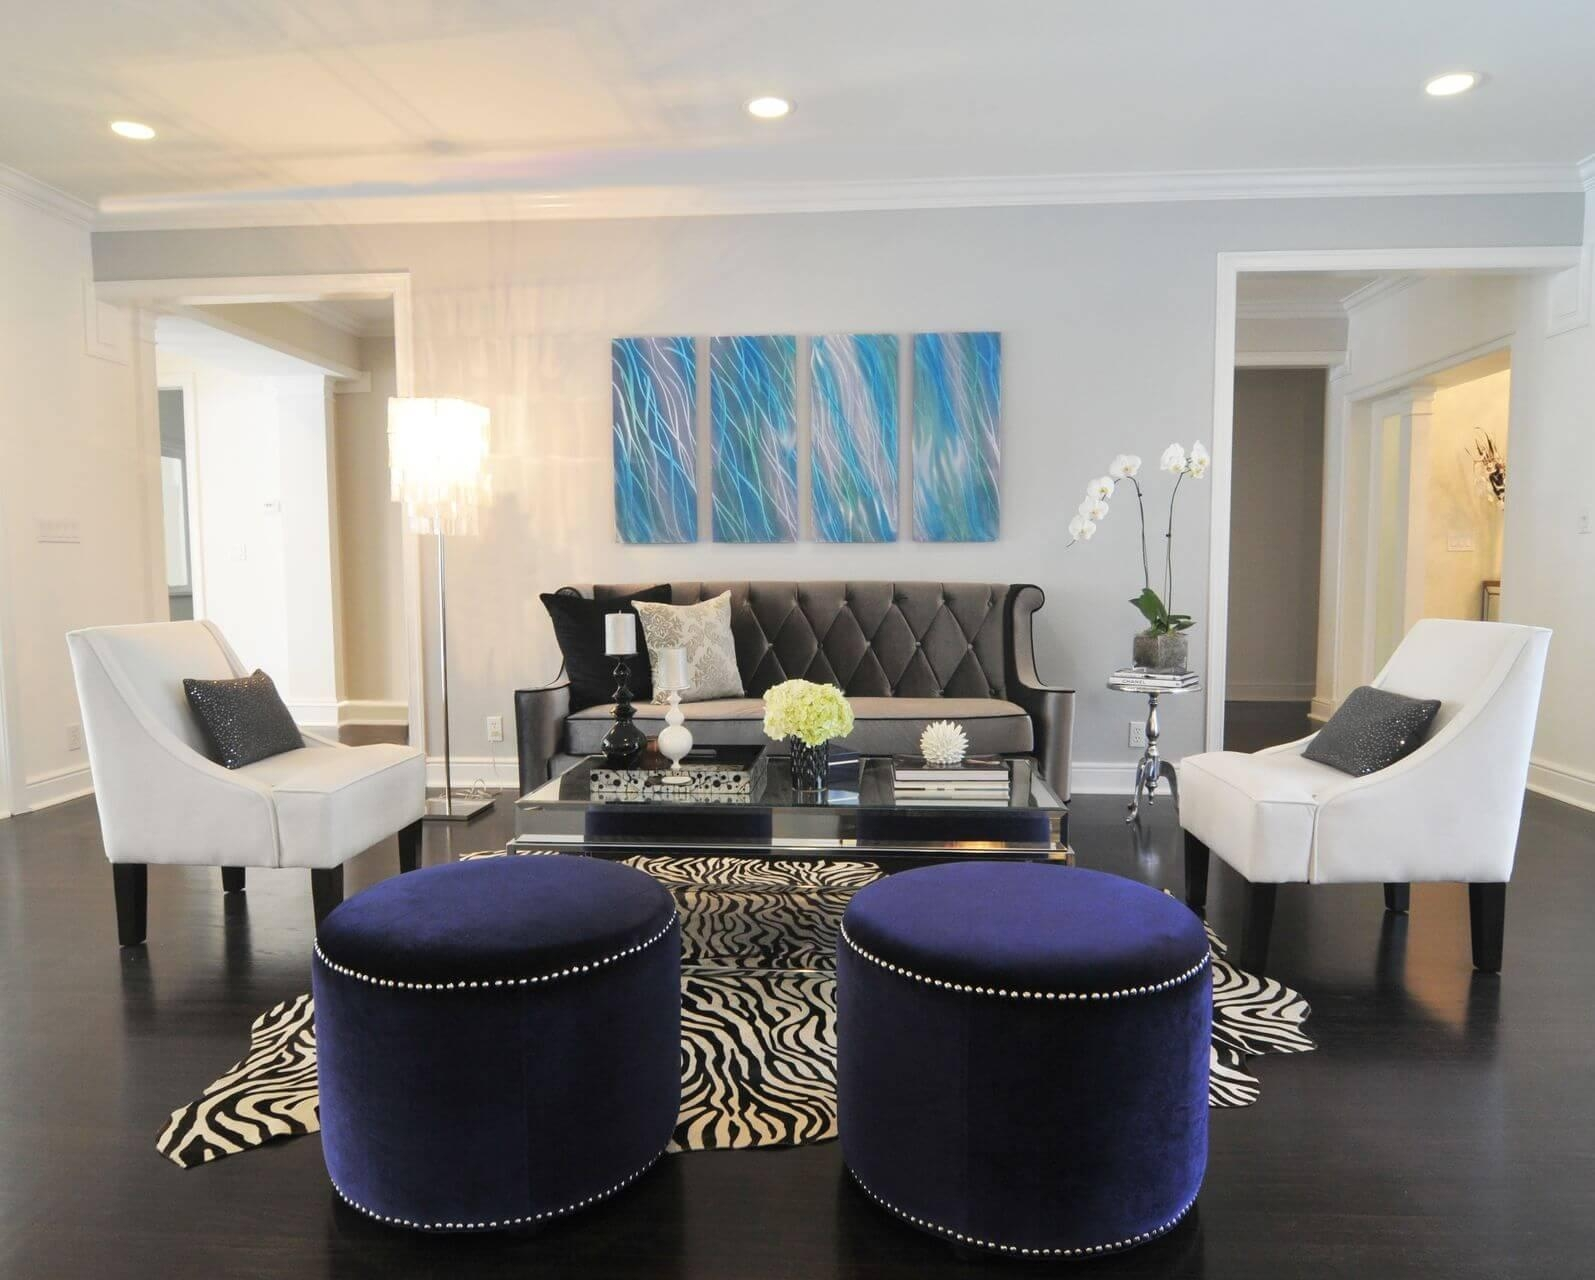 Zebra Chairs and Ottoman Center Table photo - 7